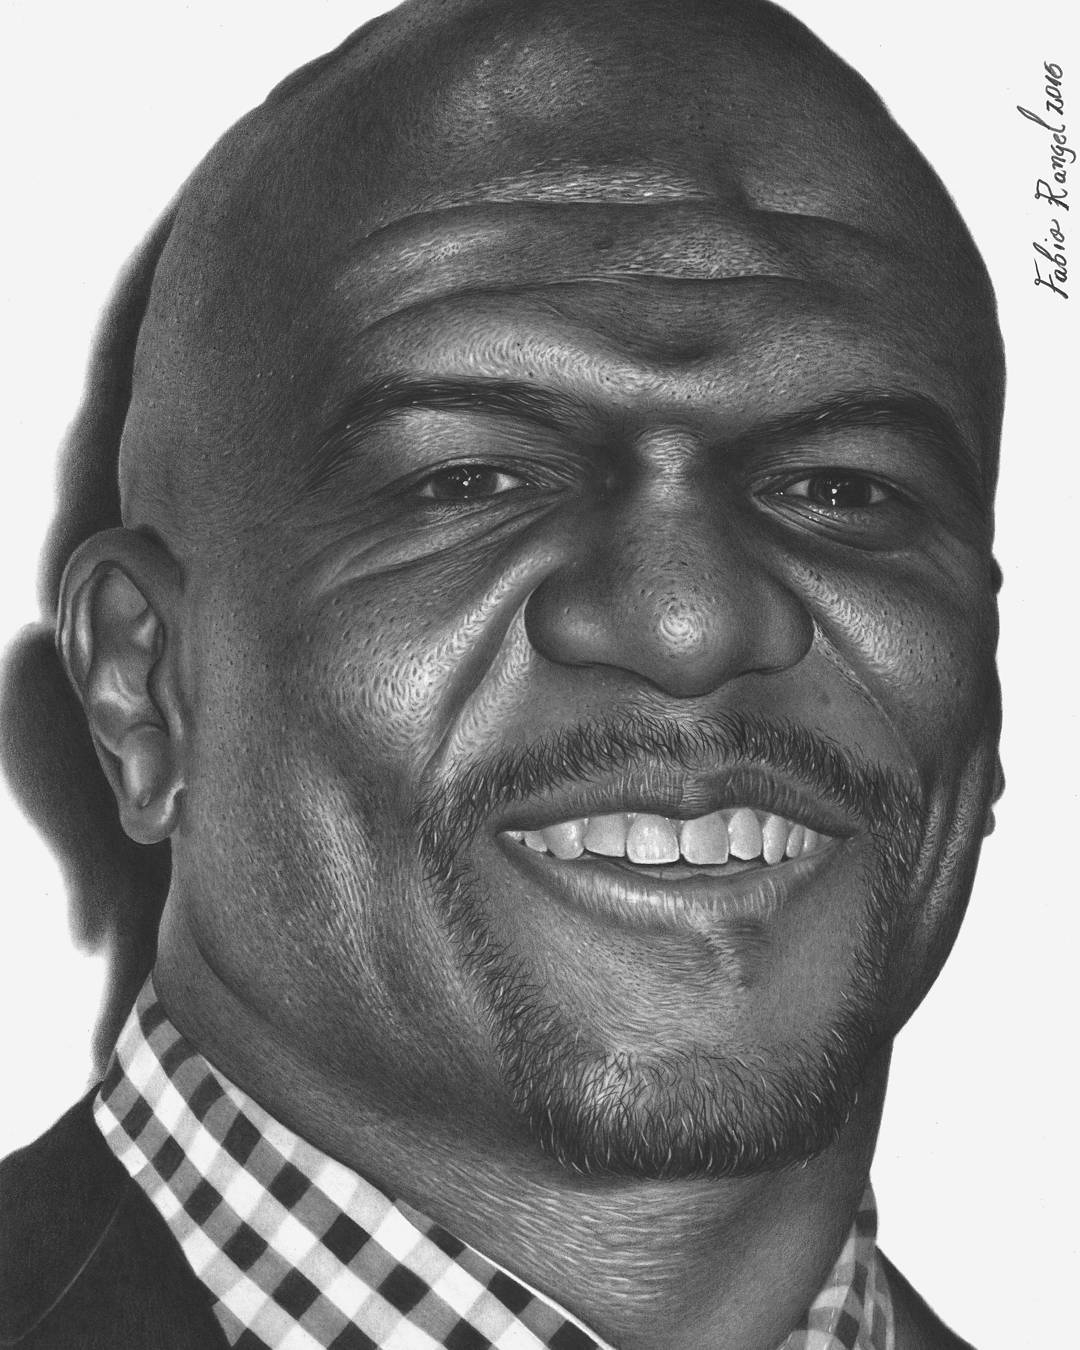 20-Terry-Crews-Fabio-Rangel-Drawings-of-Protagonists-from-TV-and-Movies-www-designstack-co